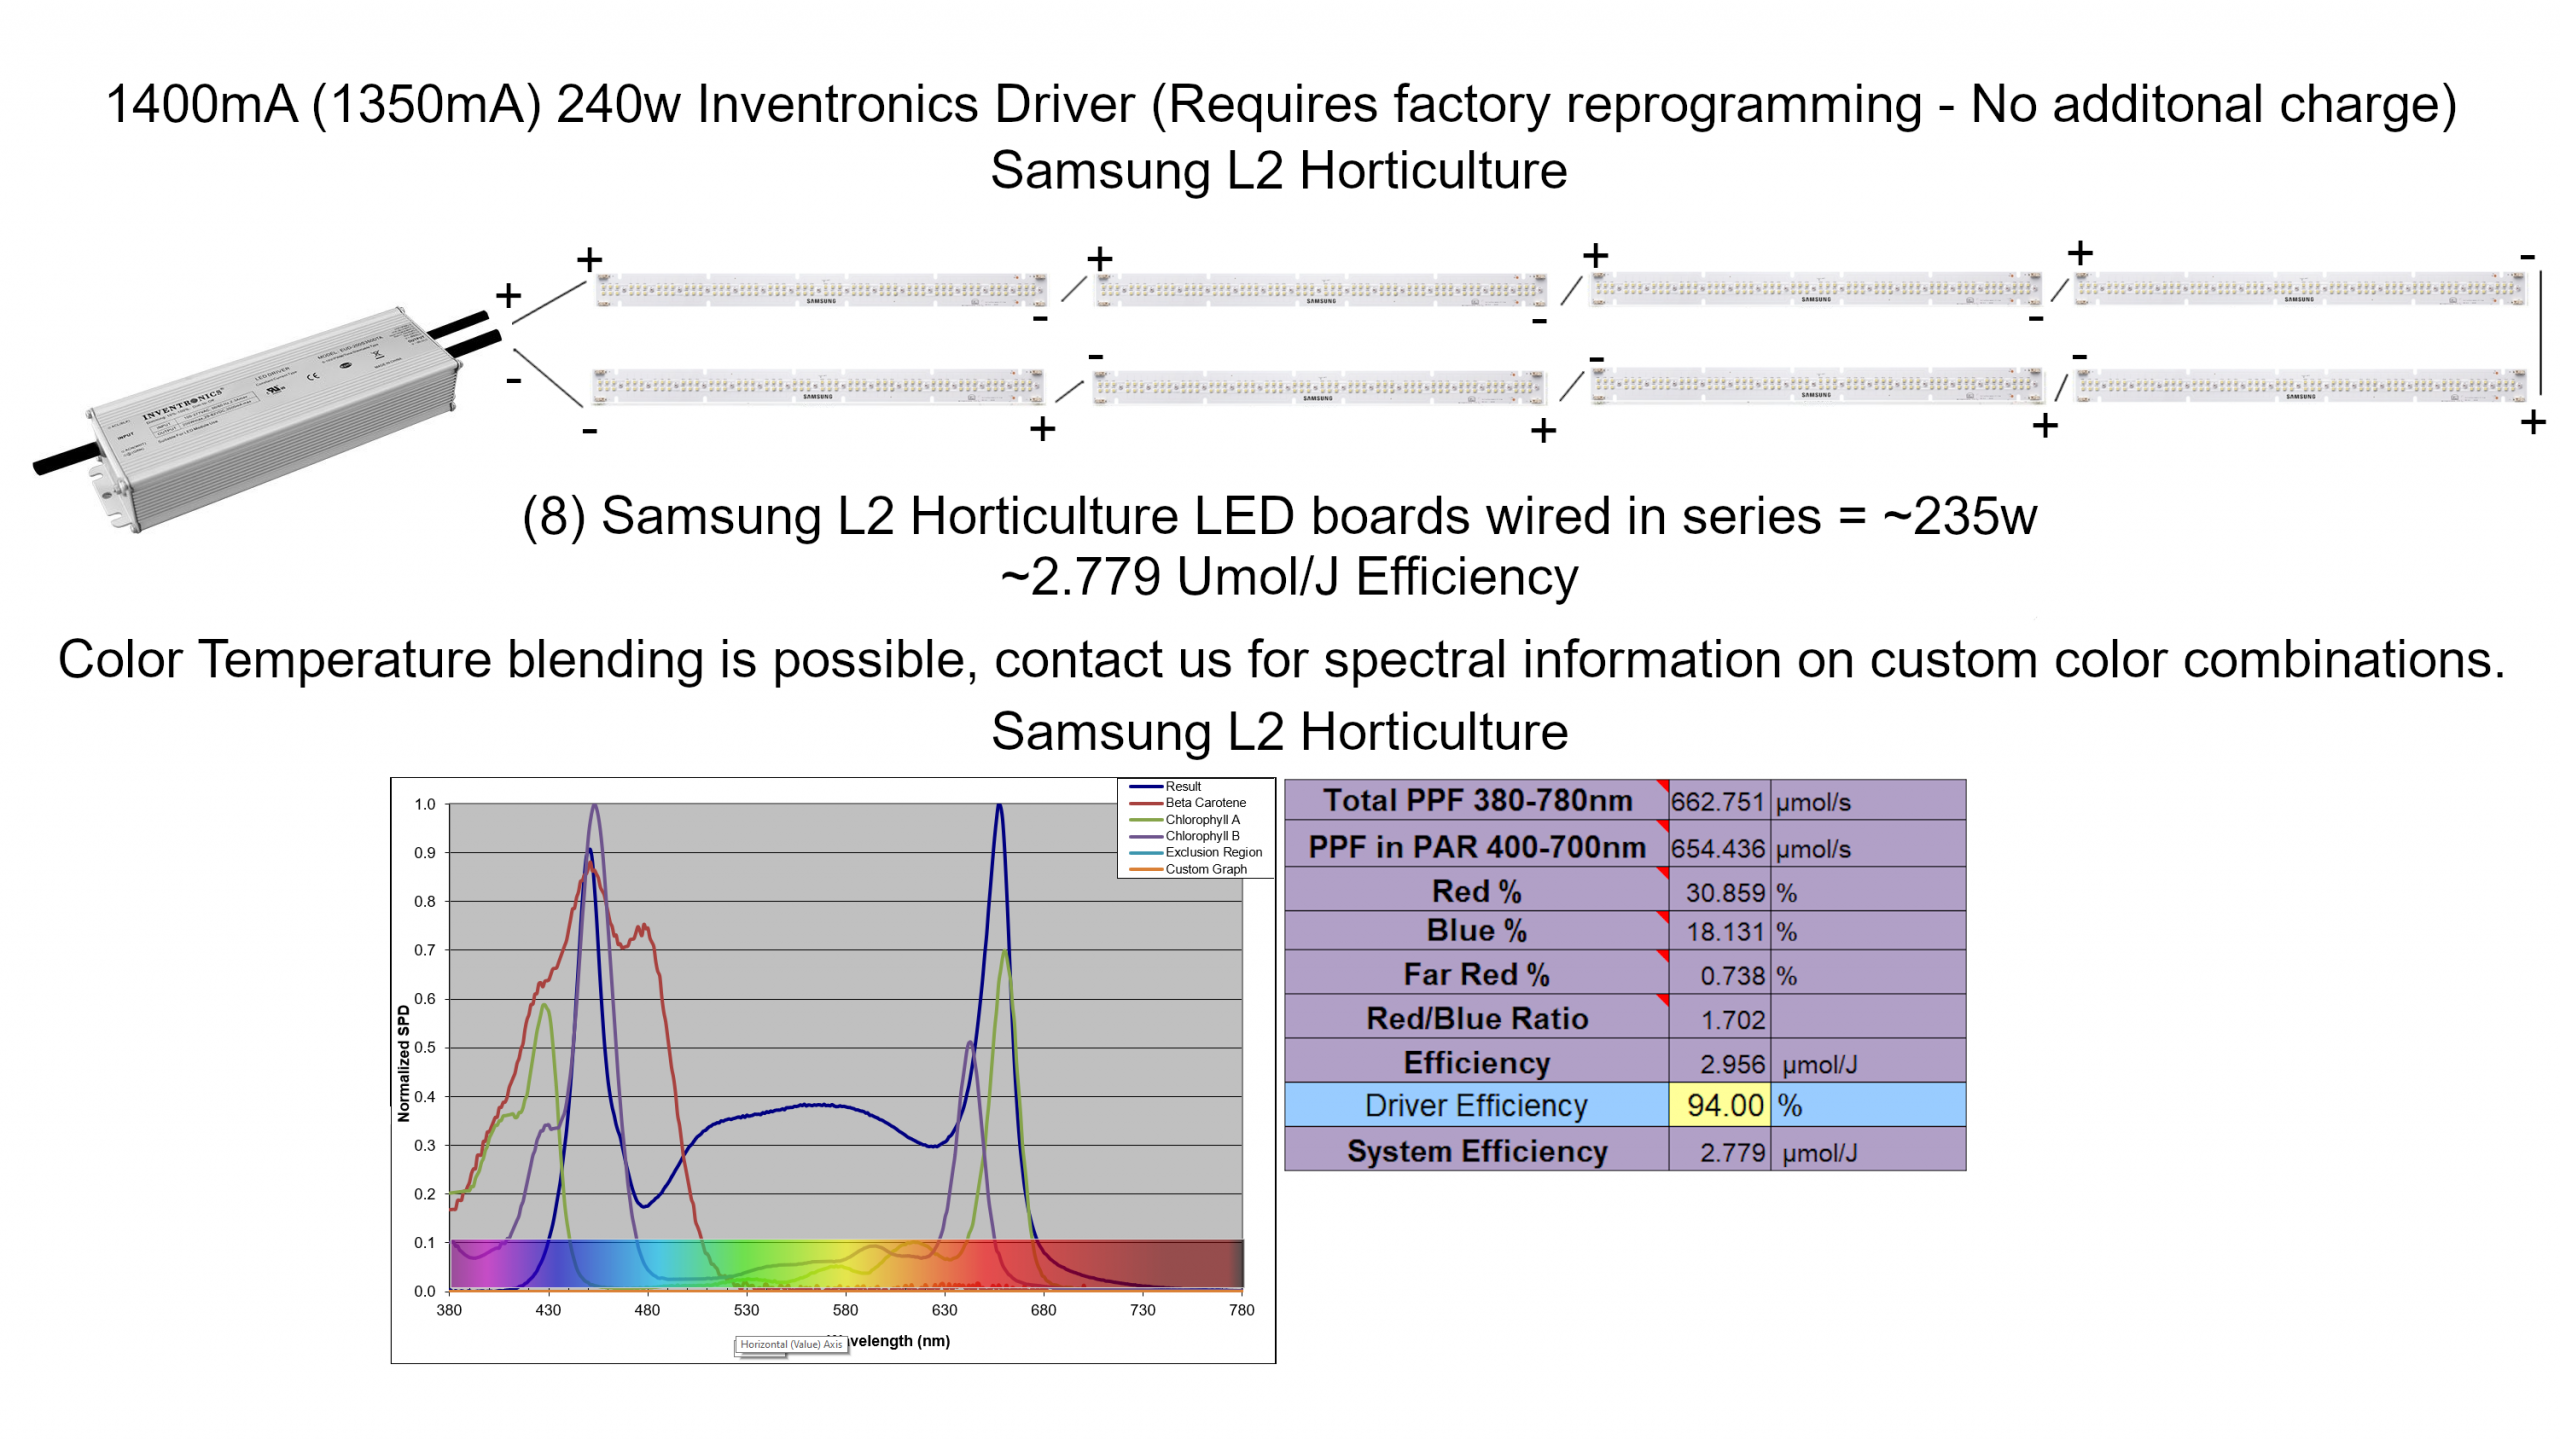 Samsung L2 Horticulture LED Wiring Diagram 240w